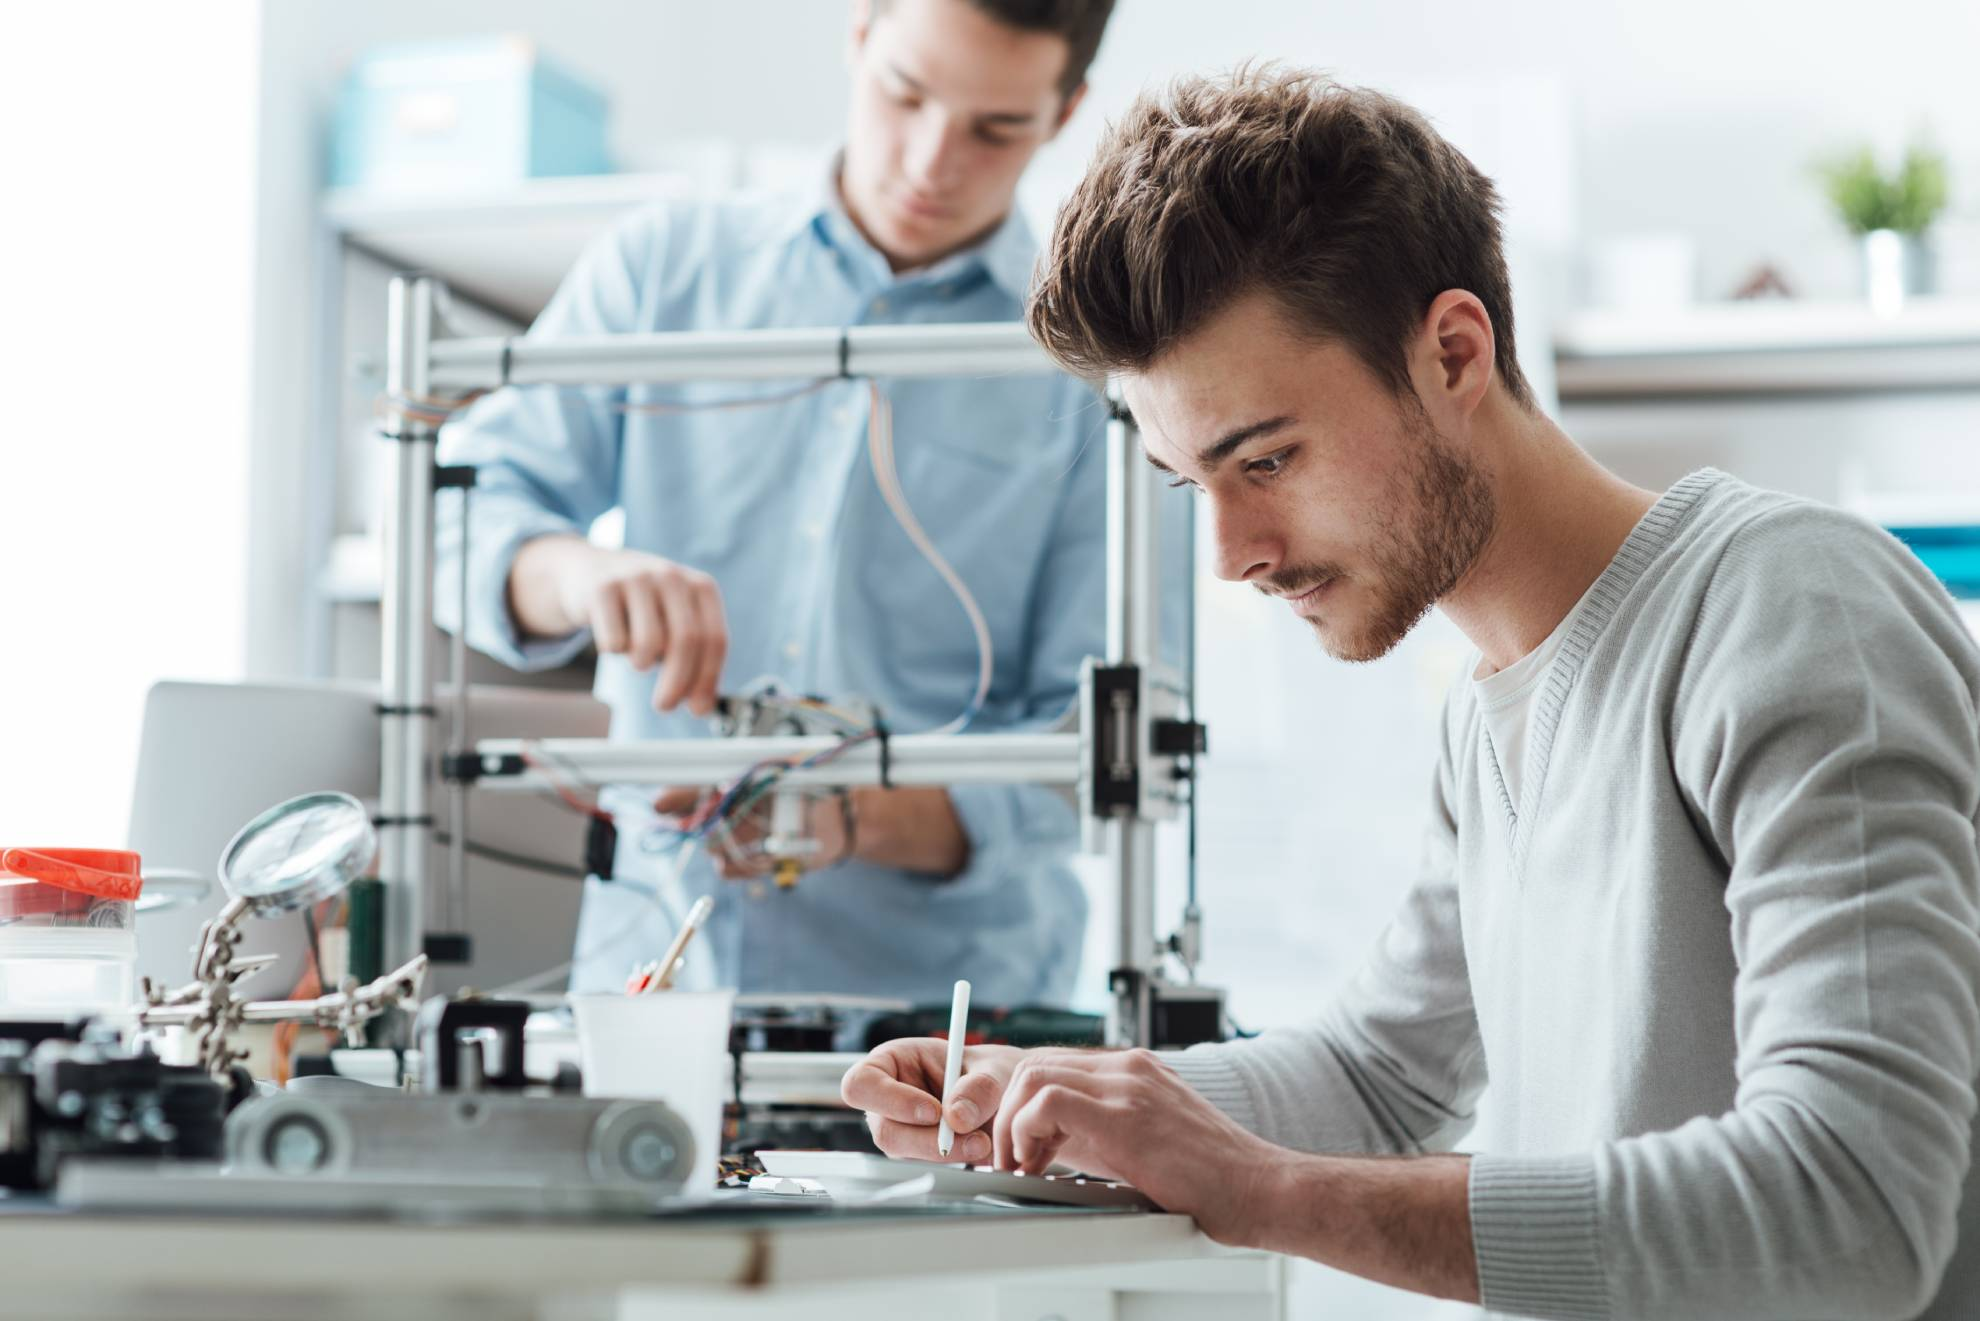 engineering-students-working-in-the-lab-P9ZGWDH (1)-min